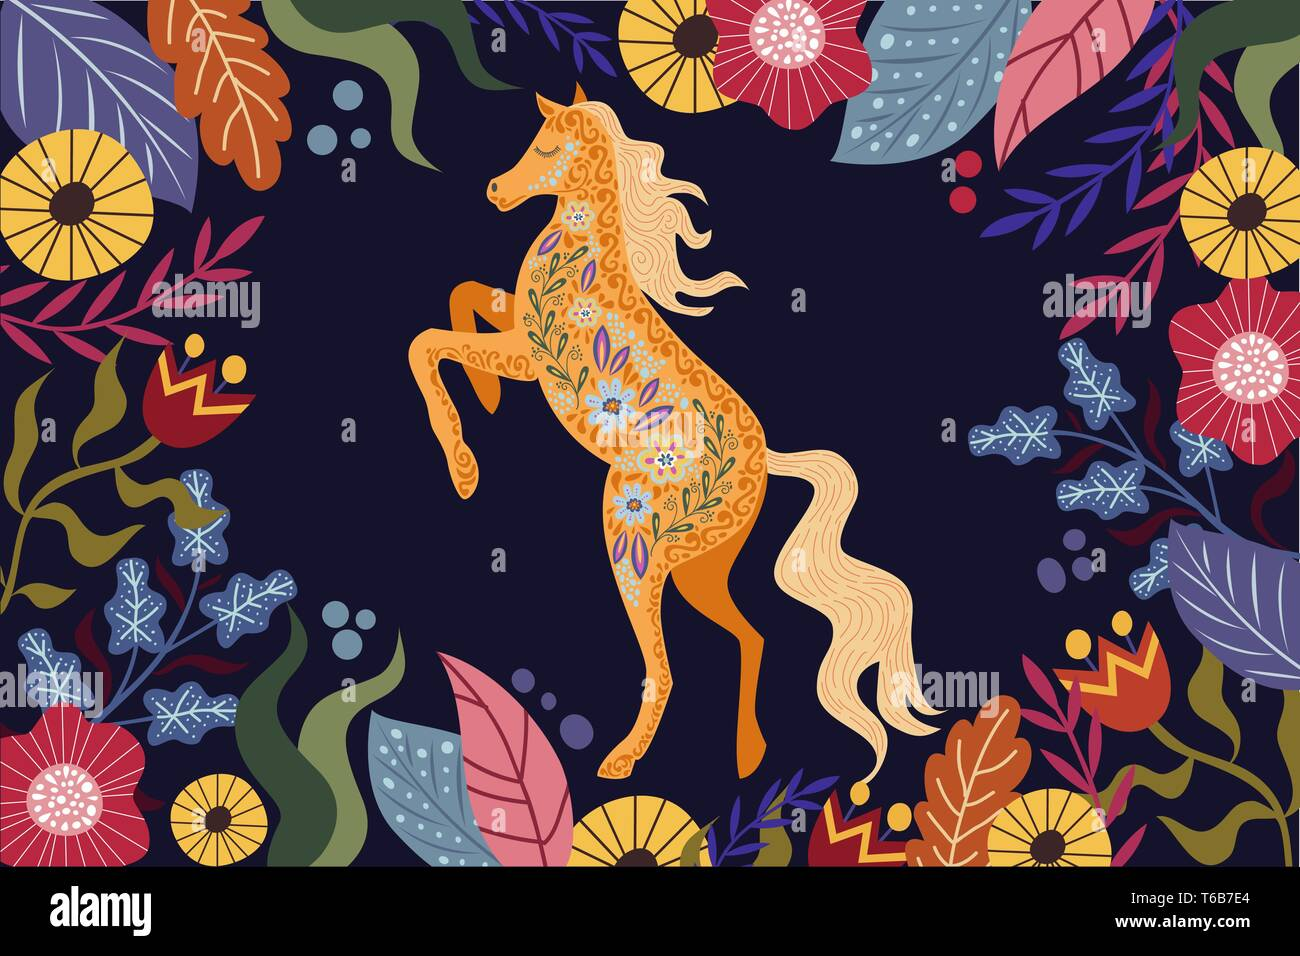 Art vector horizontal colorful illustration with beautiful abstract folk horse and flowers on a dark background. - Stock Vector